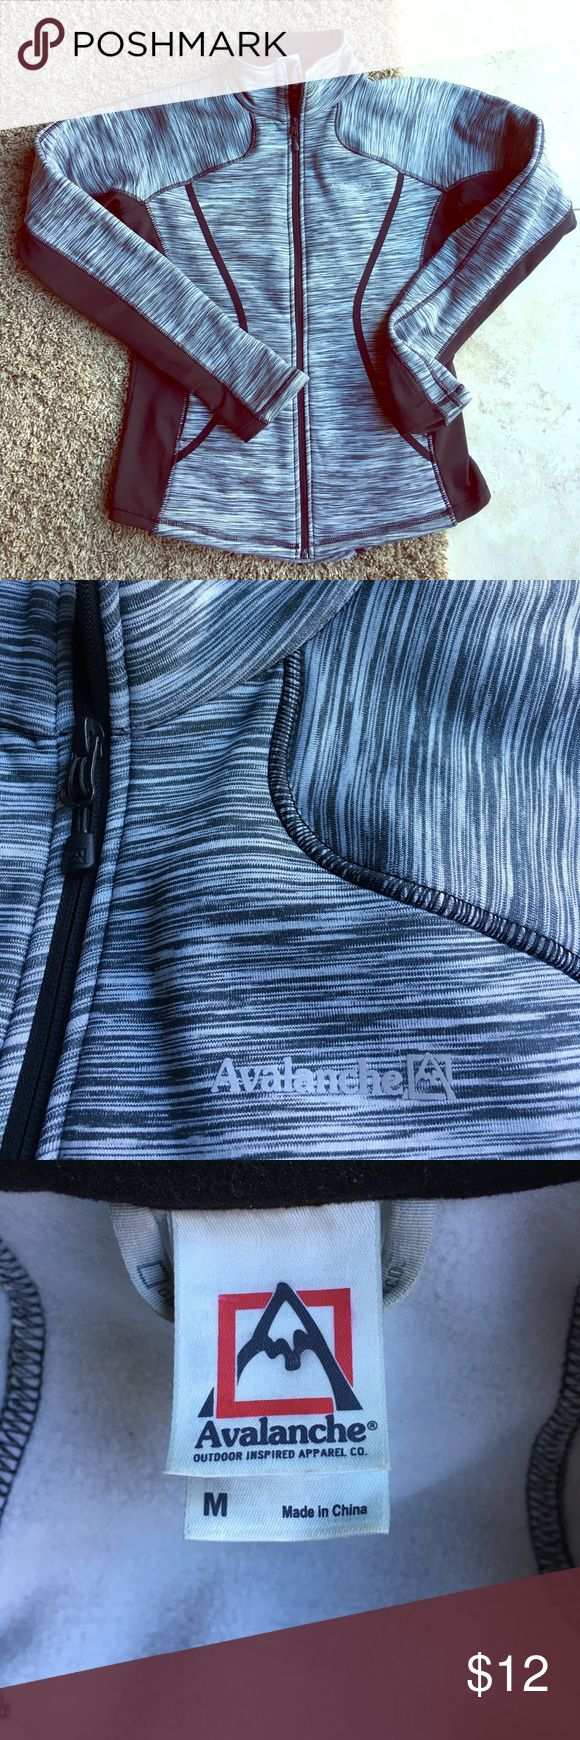 Black and White Zip up Avalanche Sweatshirt. Avalanche Black and White zip up sweatshirt.  Thumb holes at bottom of sleeves. Size Medium. Soft!  Only worn a couple of times. Cinching on the back makes it flattering. Avalanche  Tops Sweatshirts & Hoodies